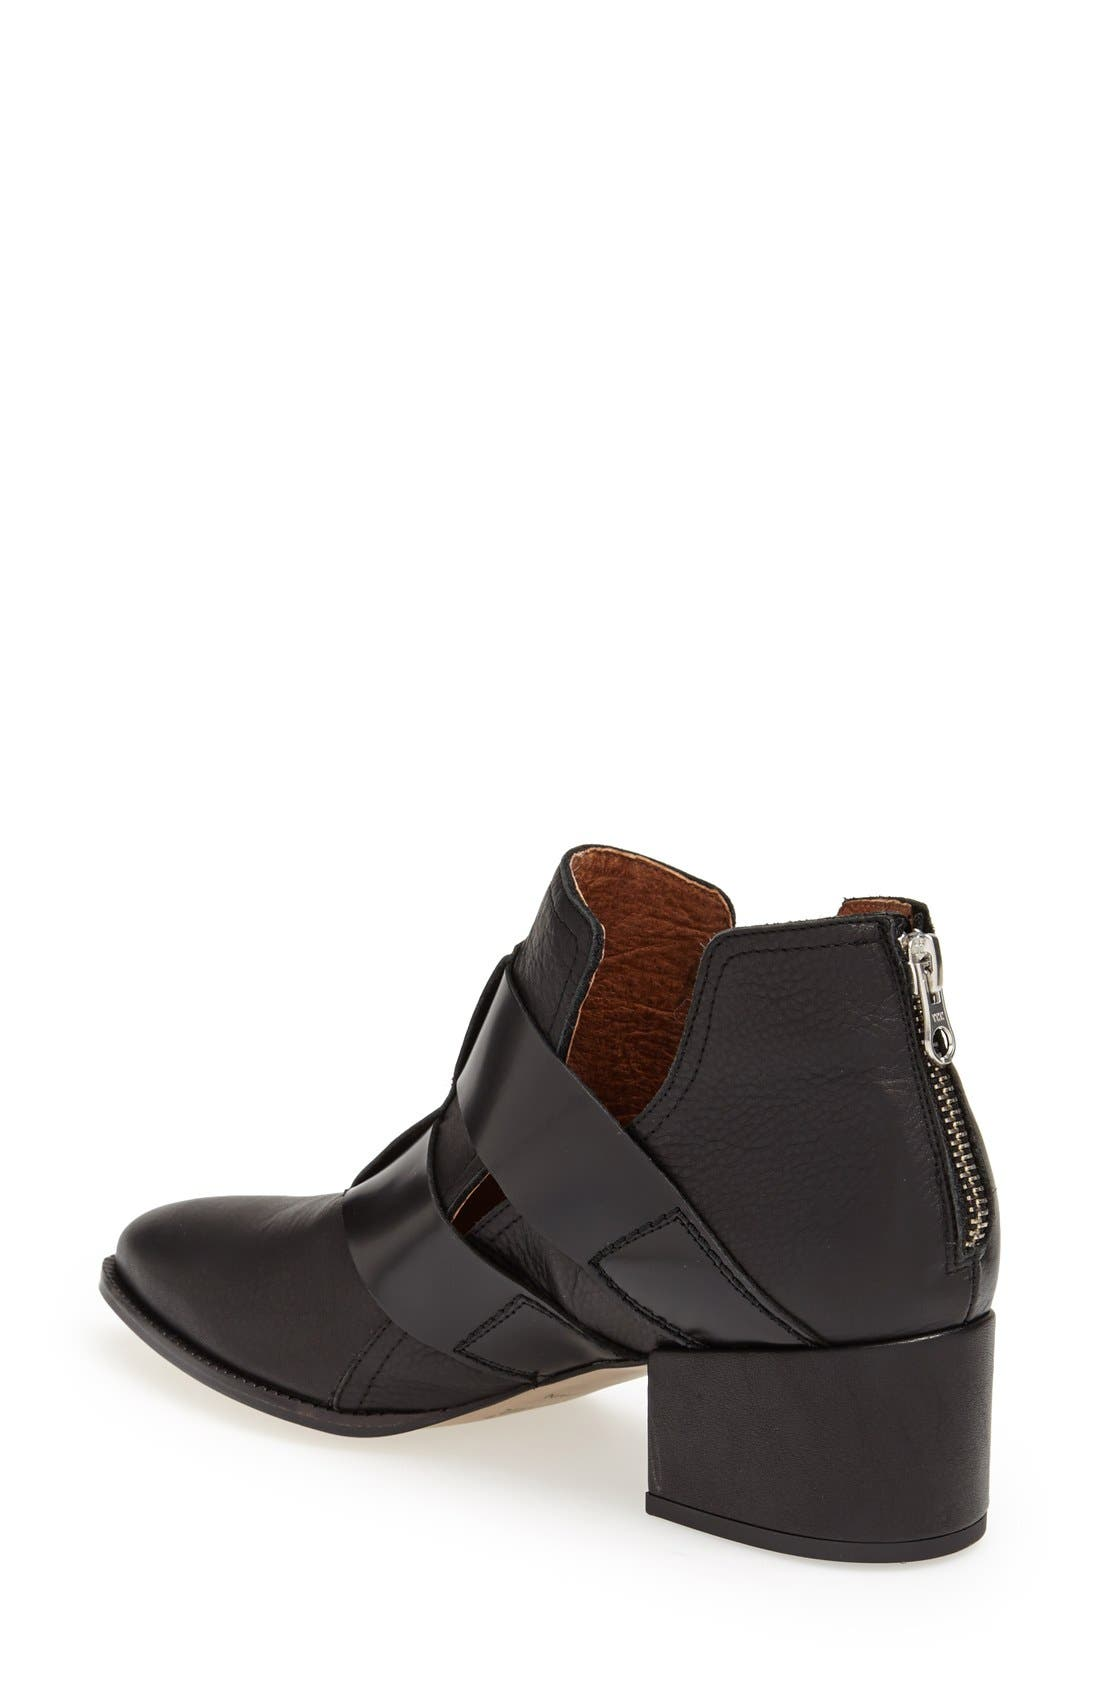 SIXTYSEVEN, 'Alice' Pointy Toe Leather Ankle Bootie, Alternate thumbnail 4, color, 001